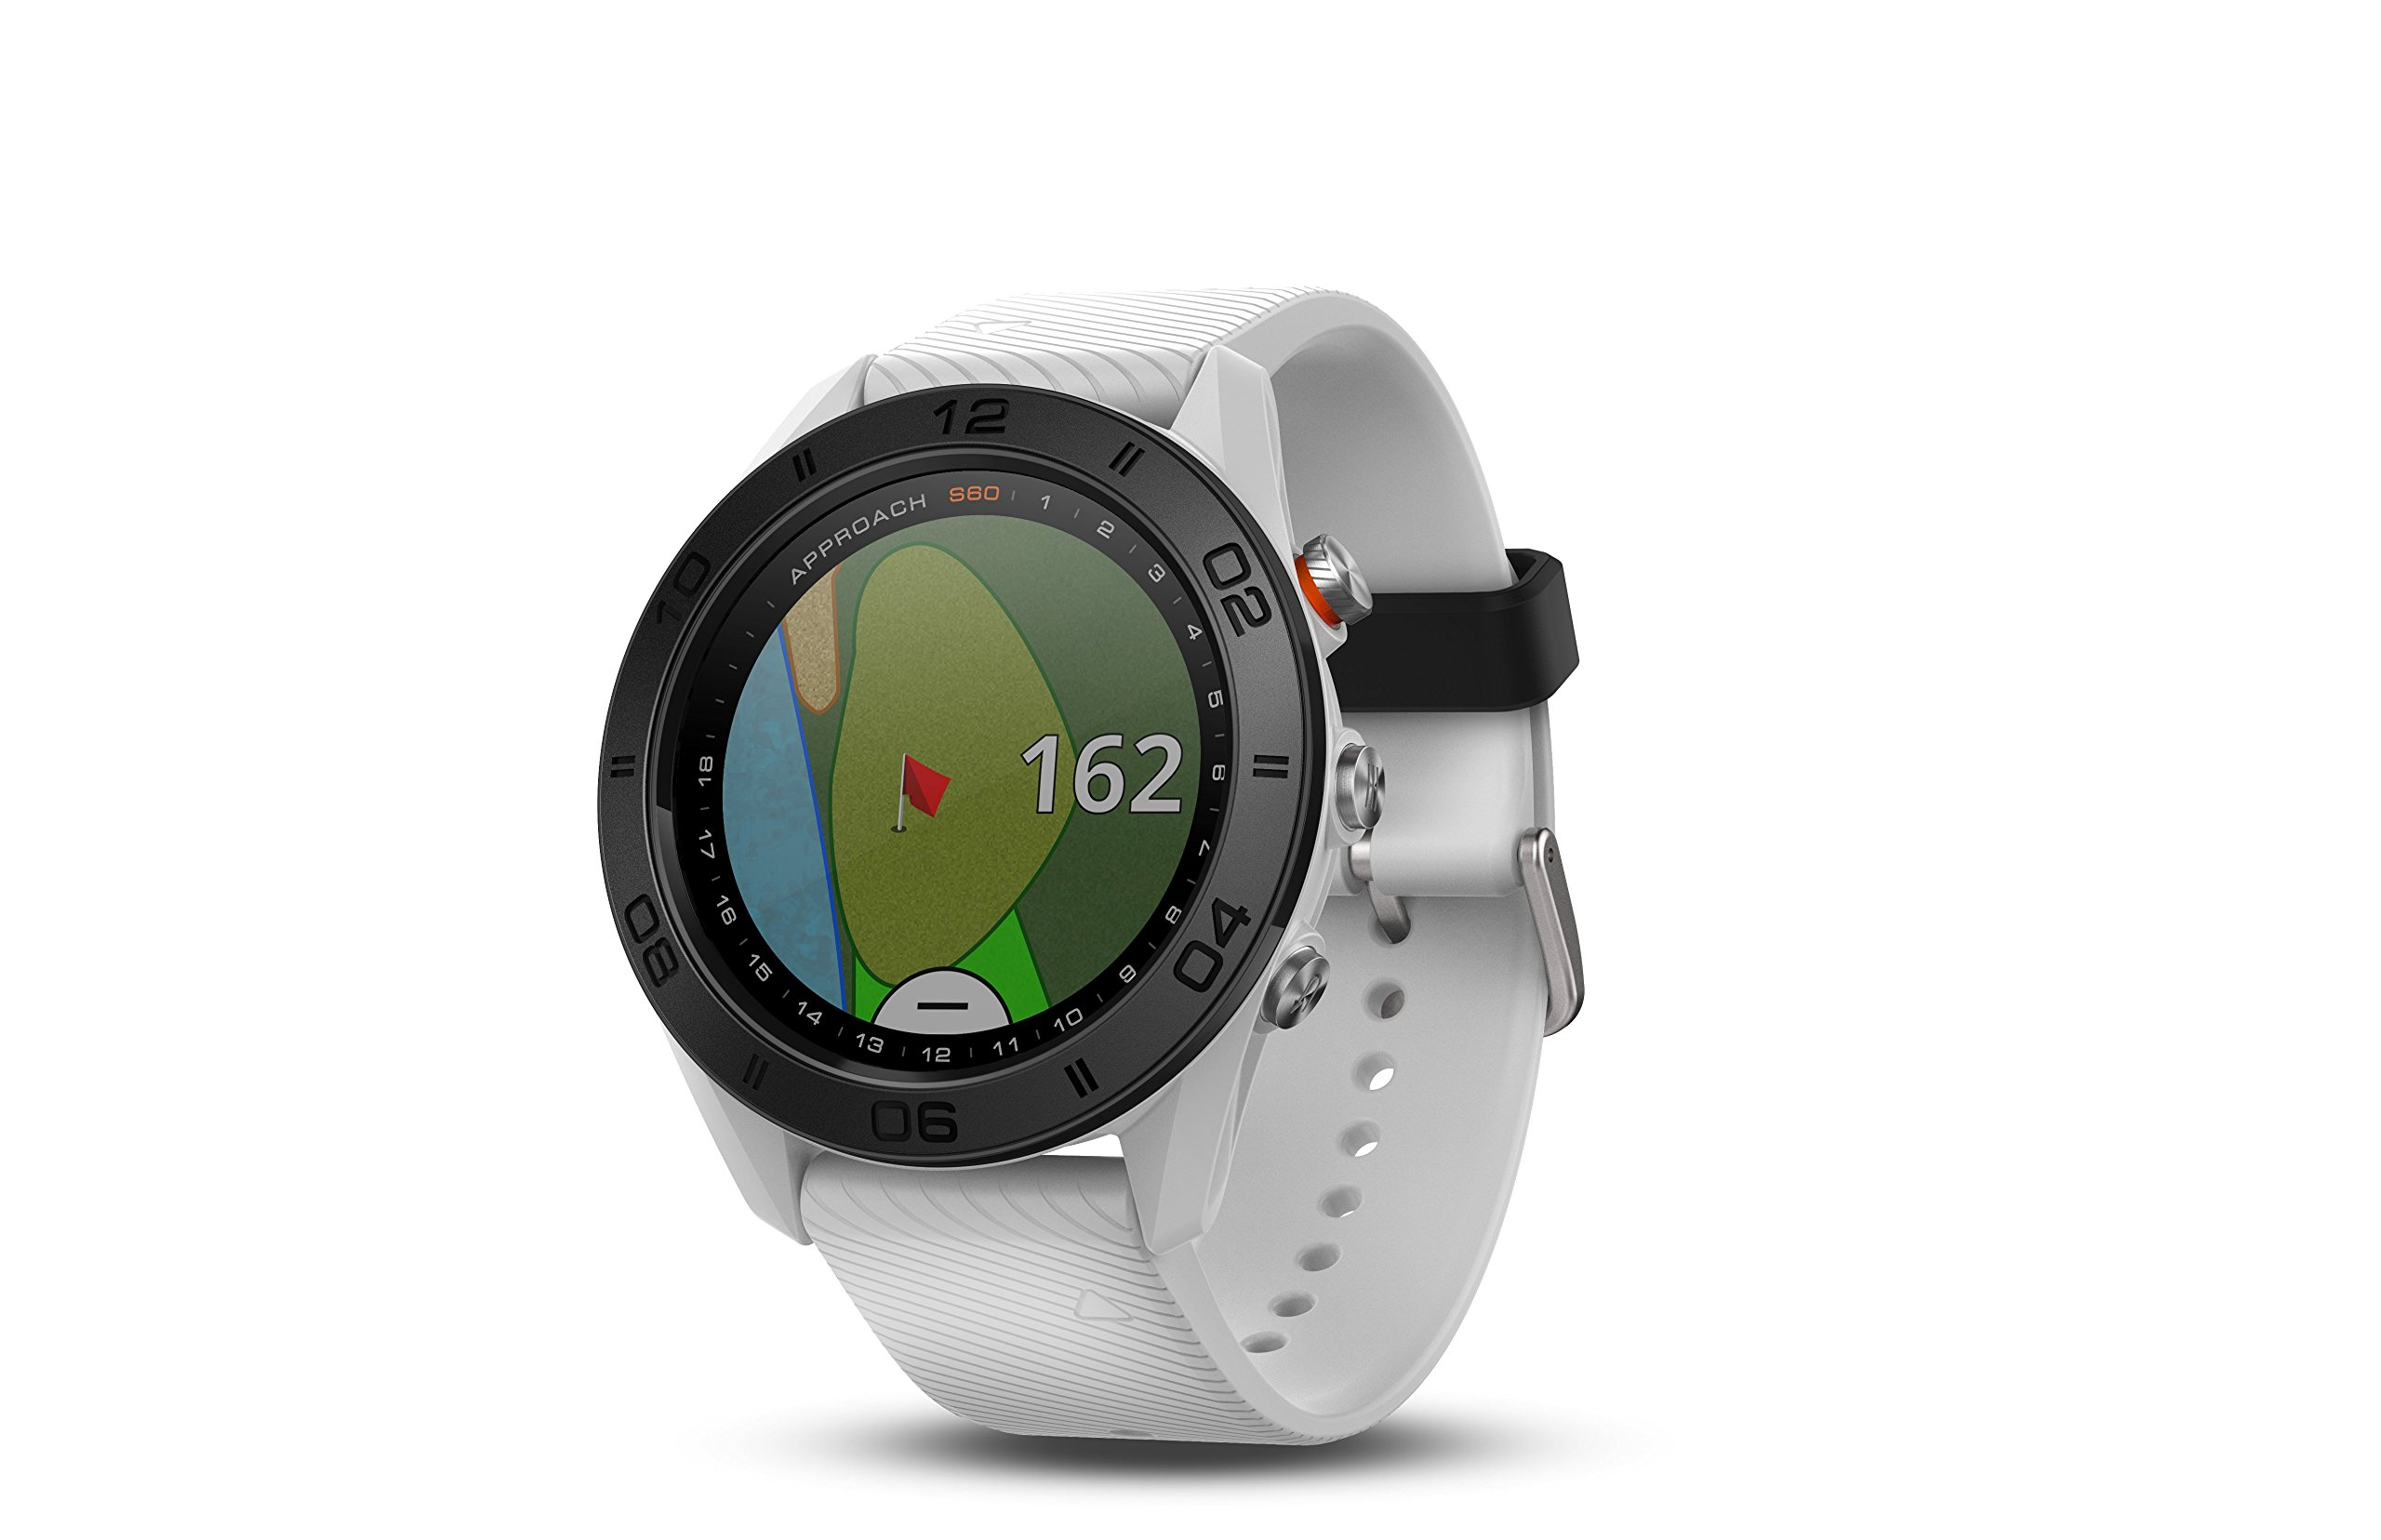 Garmin Approach S60, Premium GPS Golf Watch with Touchscreen Display and Full Color CourseView Mapping, White by Garmin